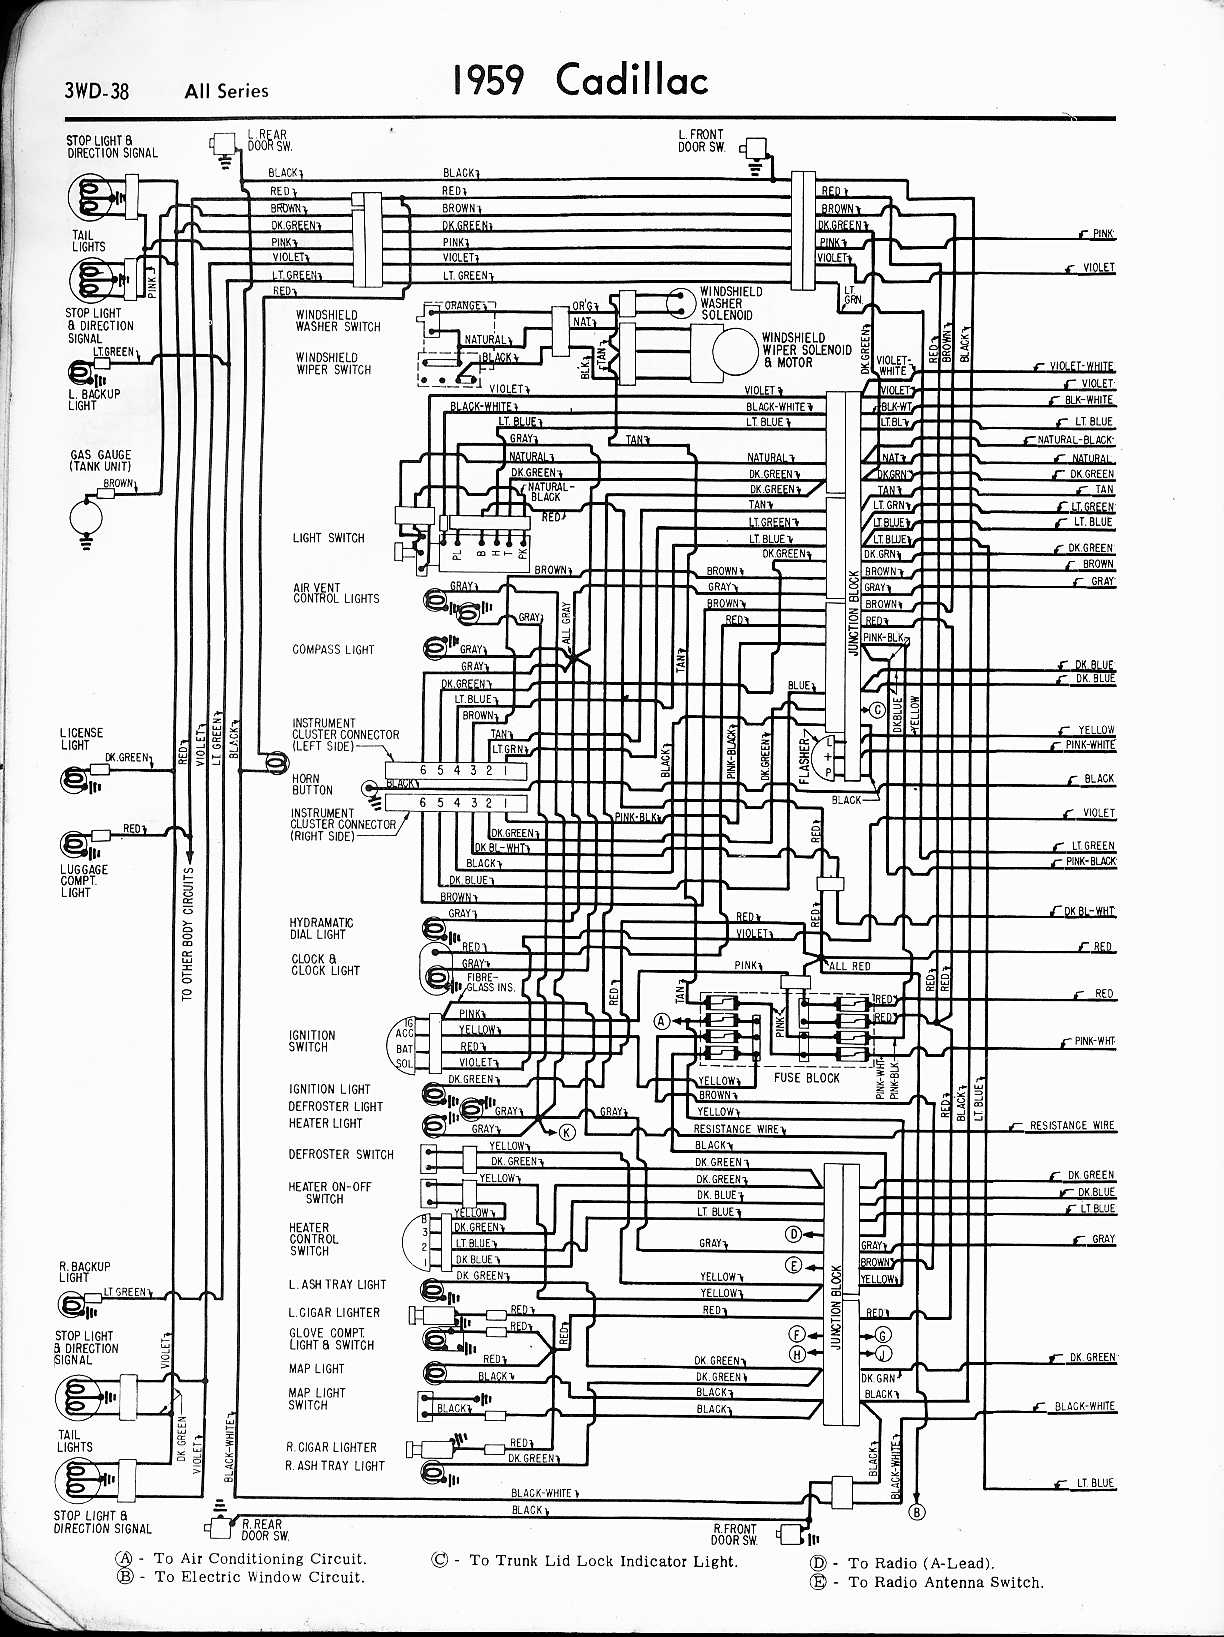 1956 gmc wiring diagram wiring diagram for you • 1956 willys wagon wiring diagram wiring library gm dash wiring diagrams gmc sierra wiring schematic